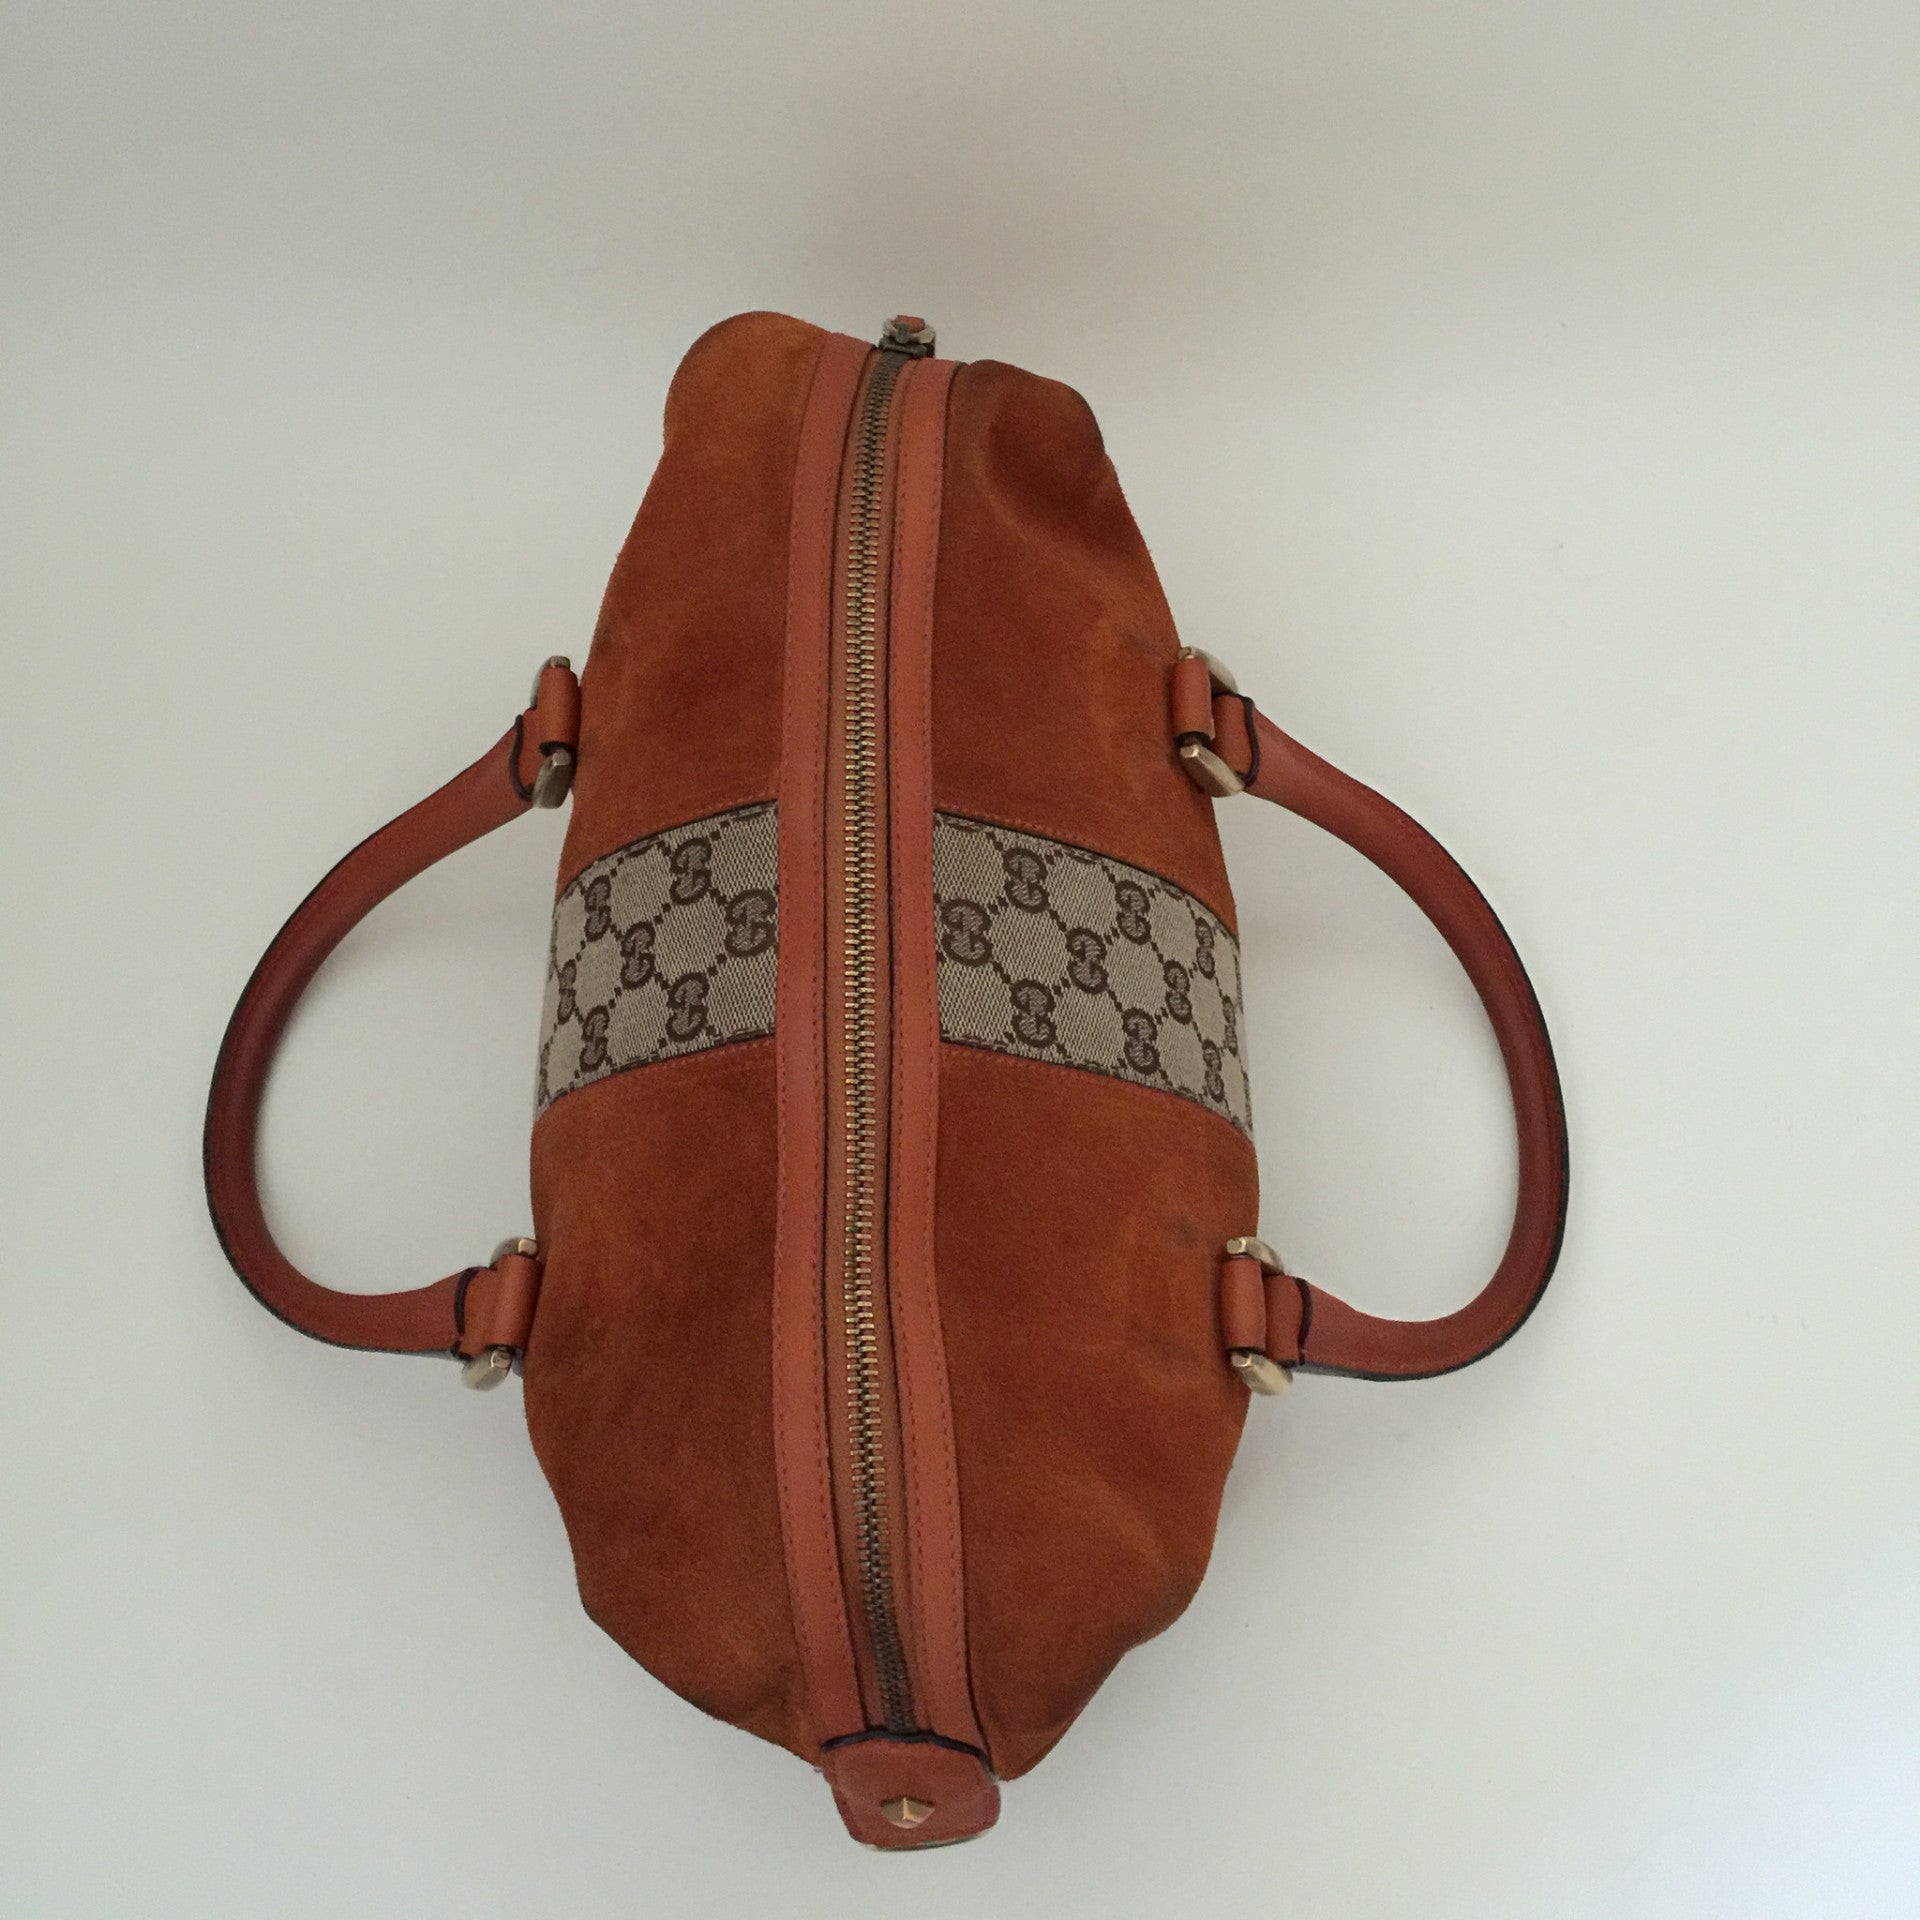 Authentic GUCCI Orange Suede Handbag